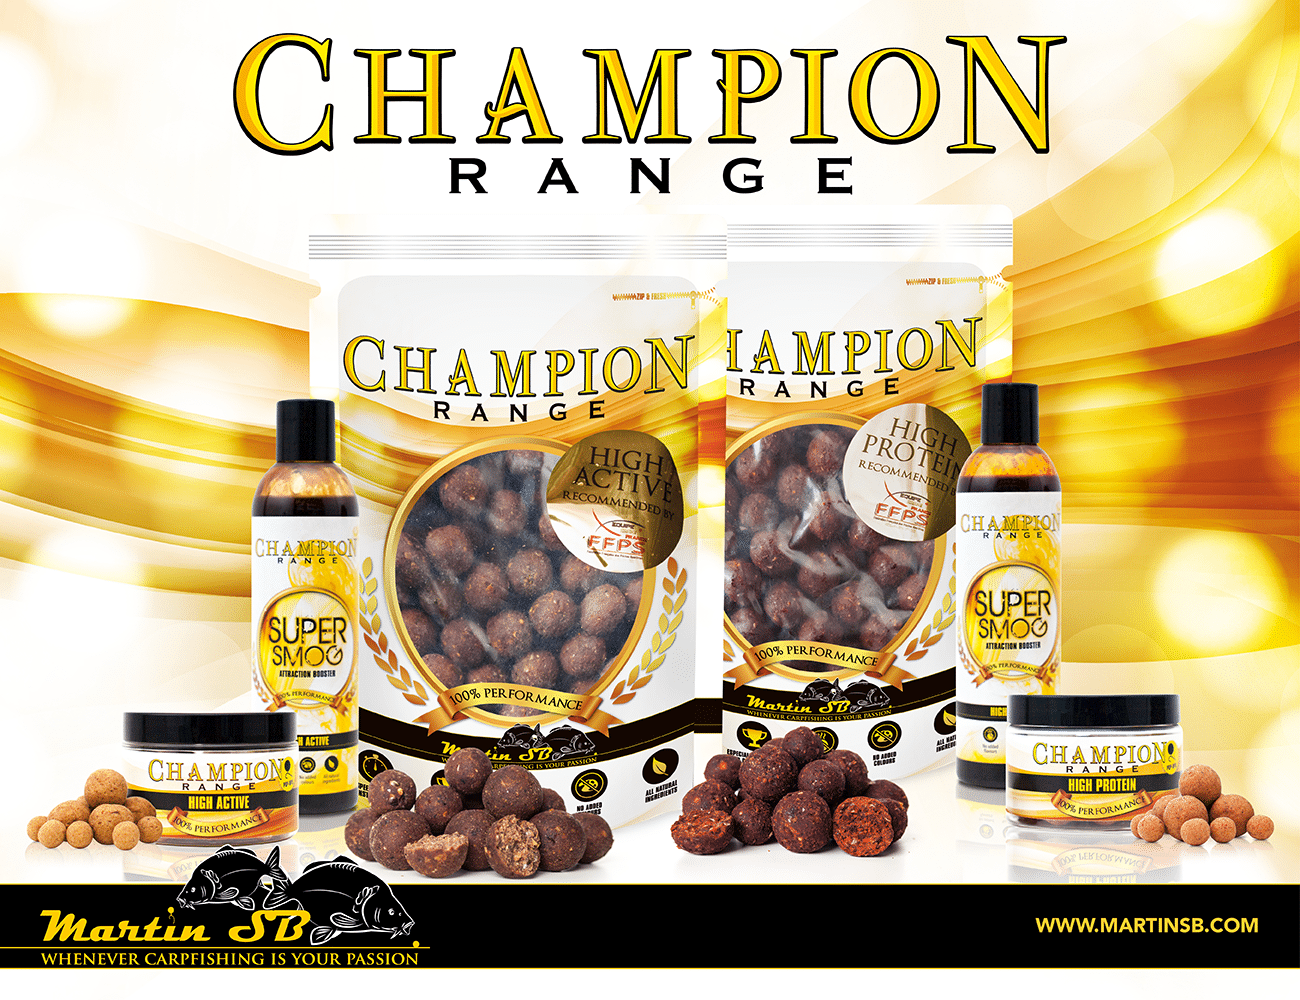 Champion Range – High Protein